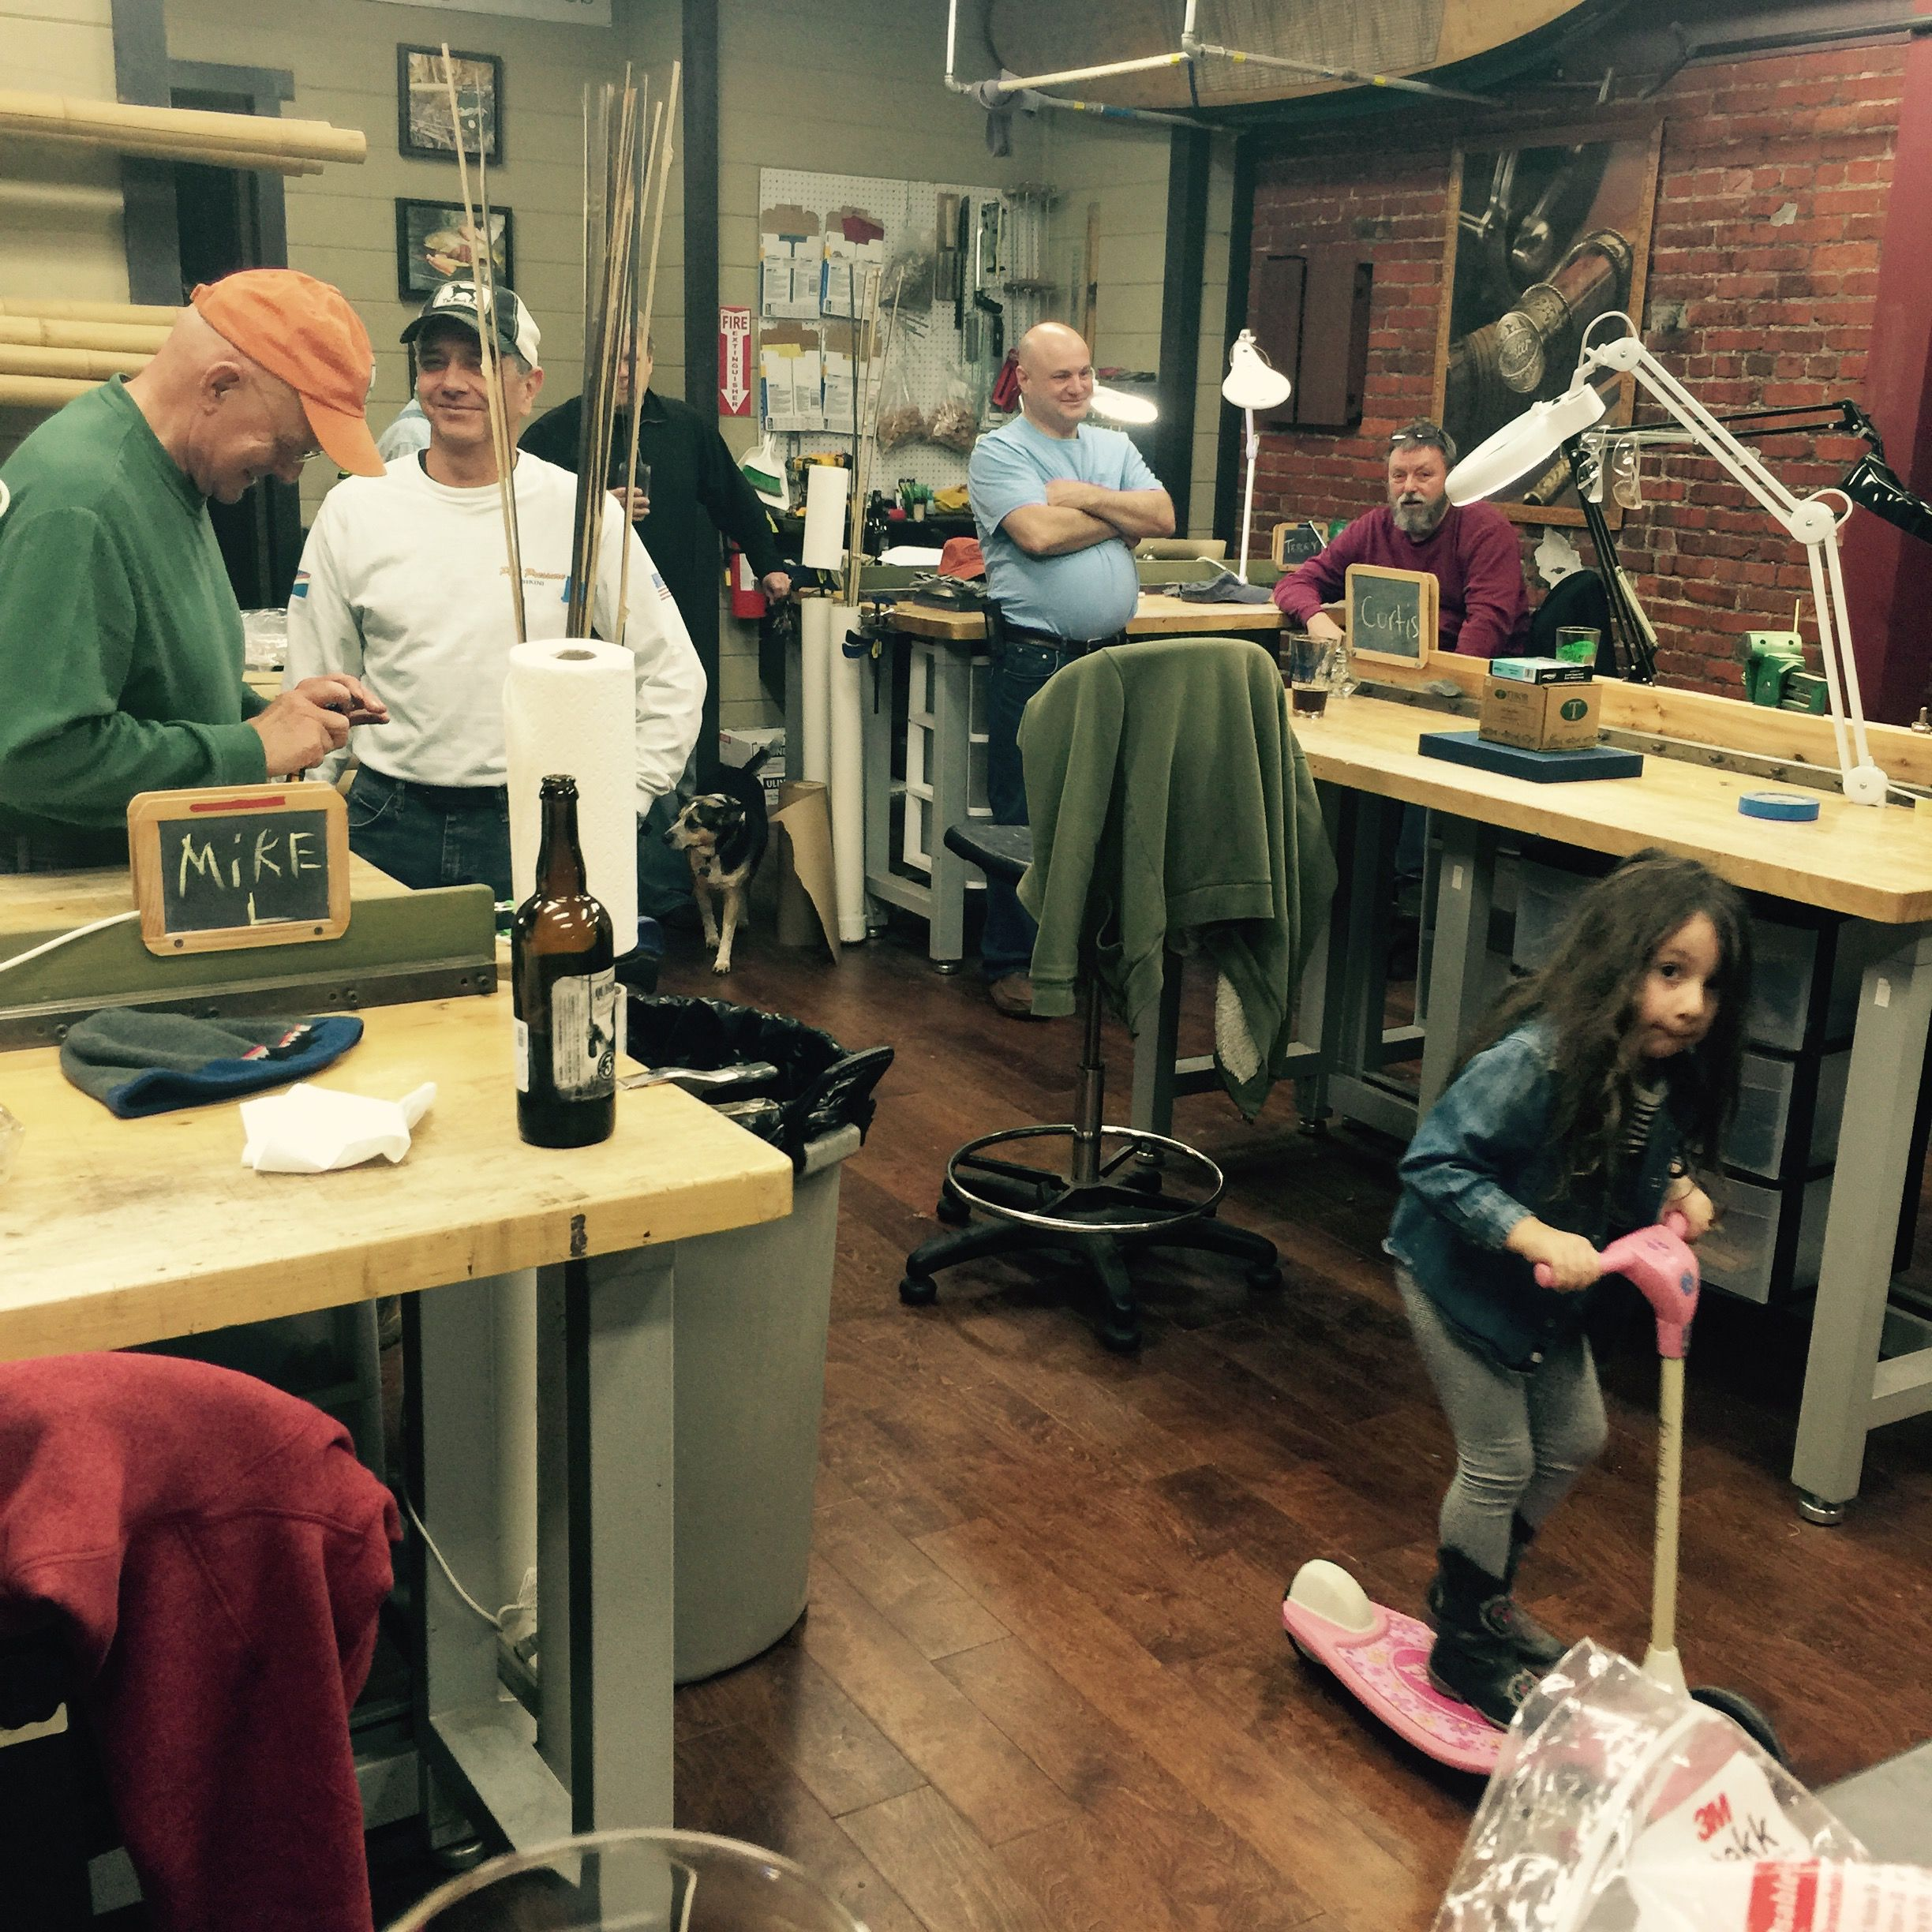 Another final day of a class at the Oyster Bamboo Fly Rod